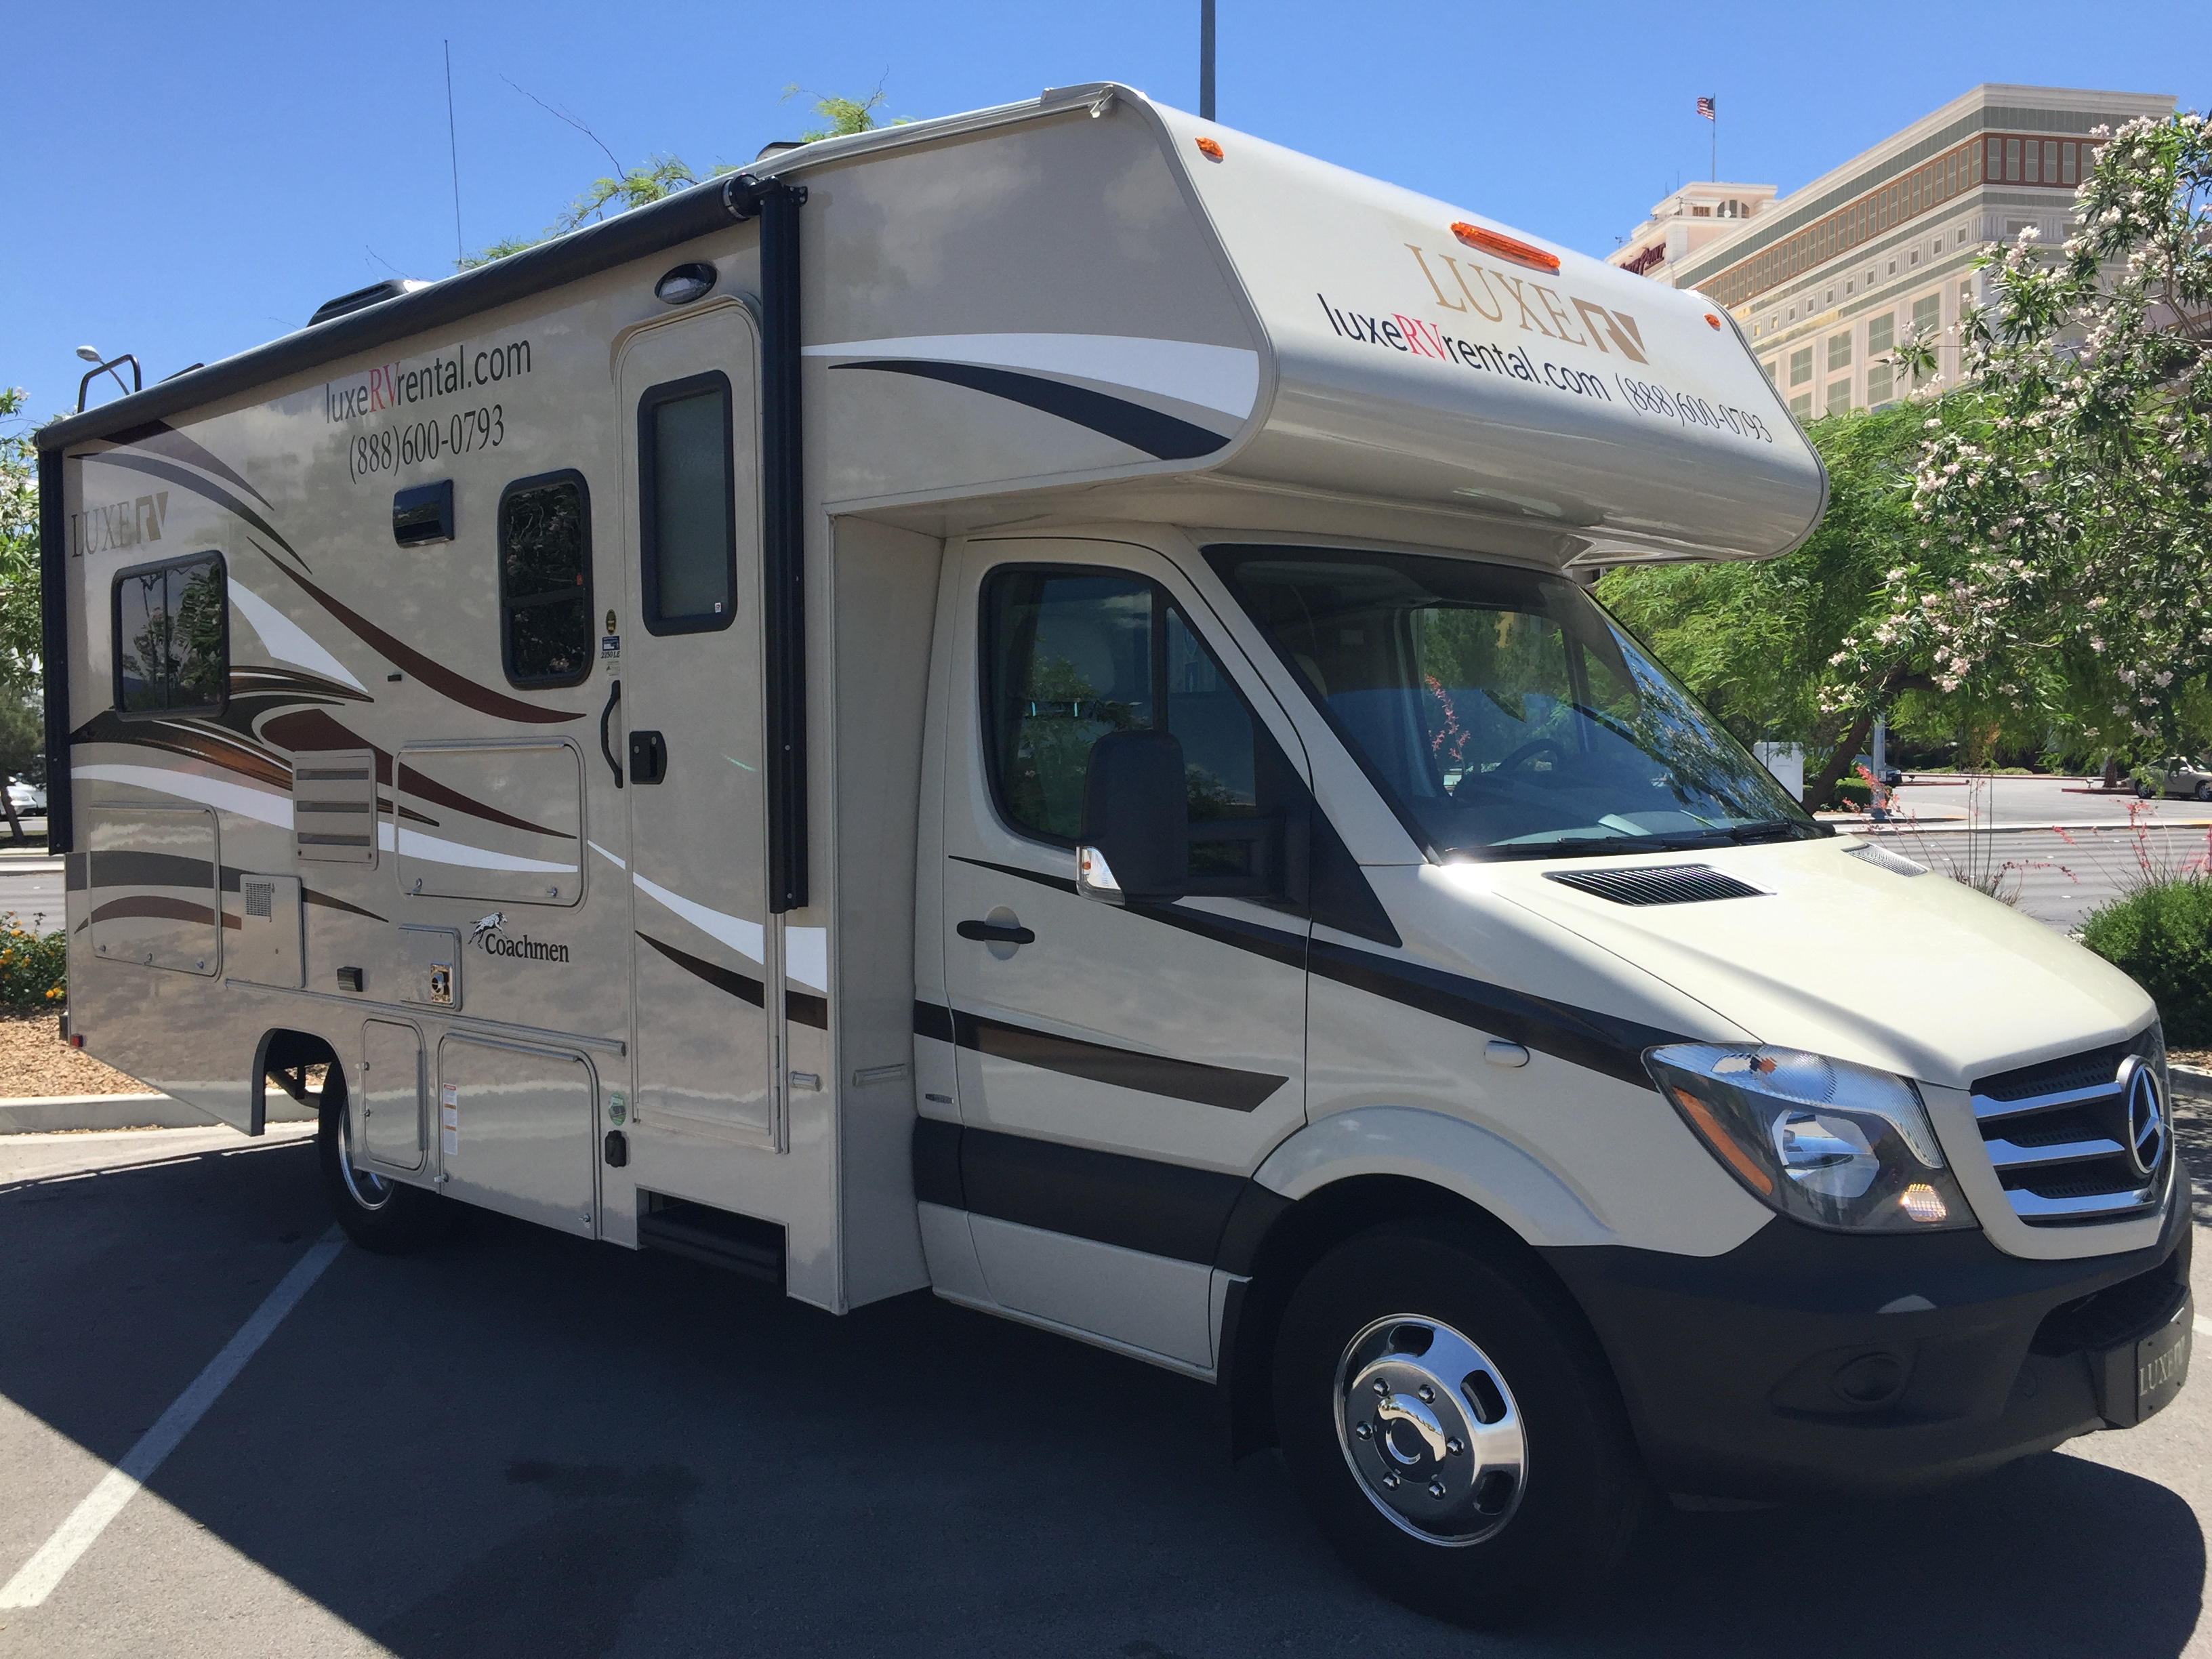 Luxe rv review compare prices and book for Mercedes benz sprinter rv service locations